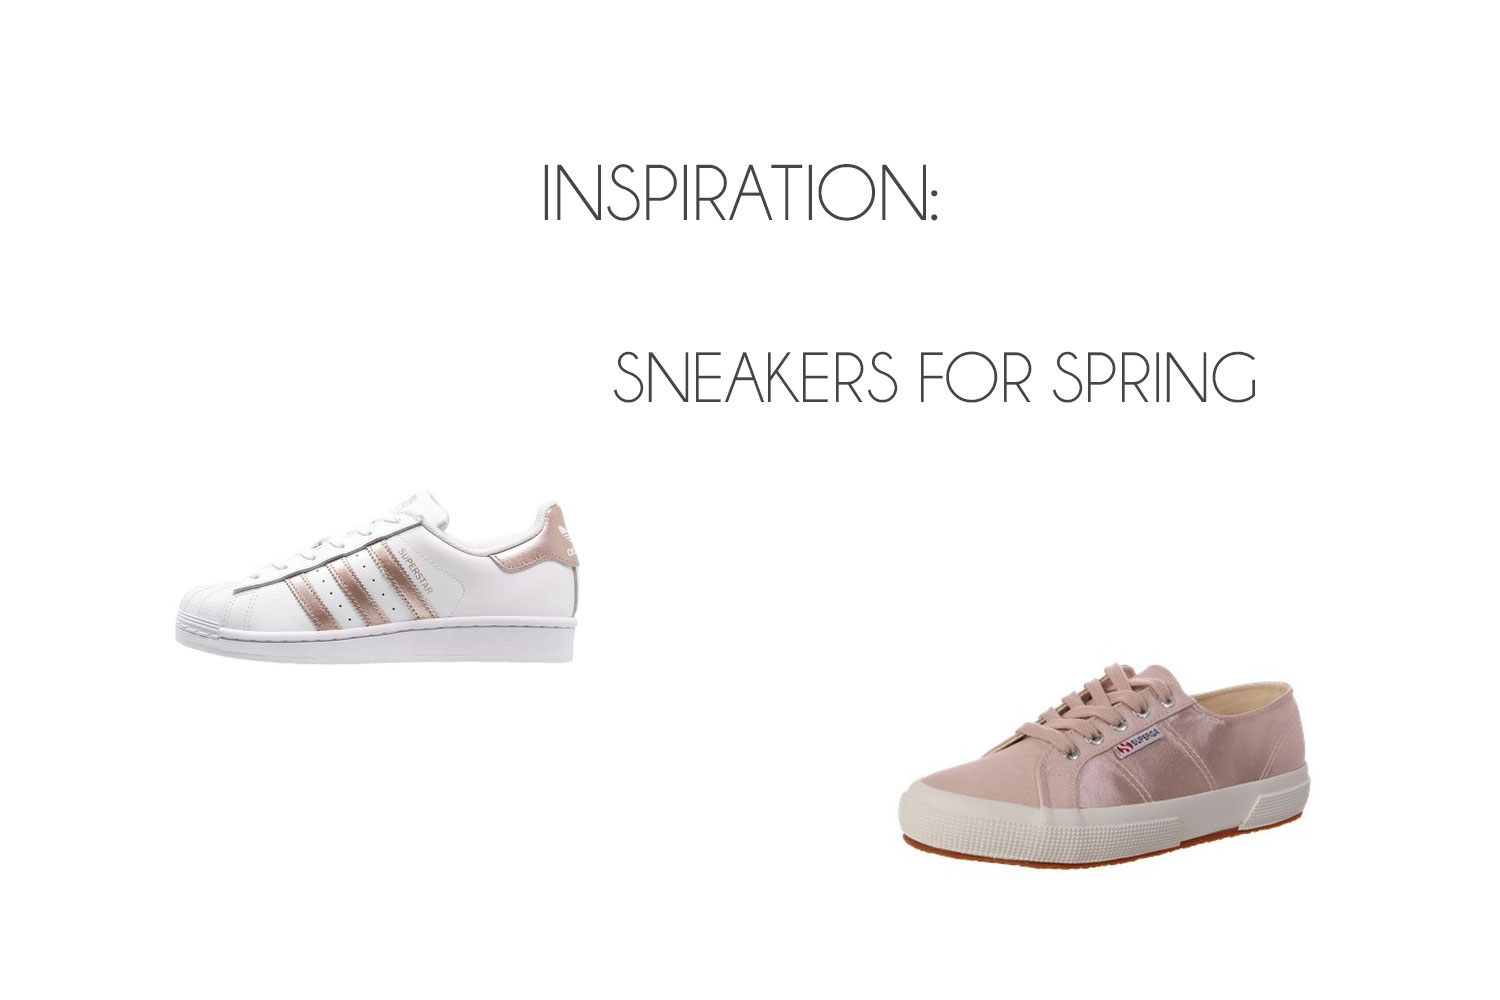 Inspiration: Sneakers for Spring